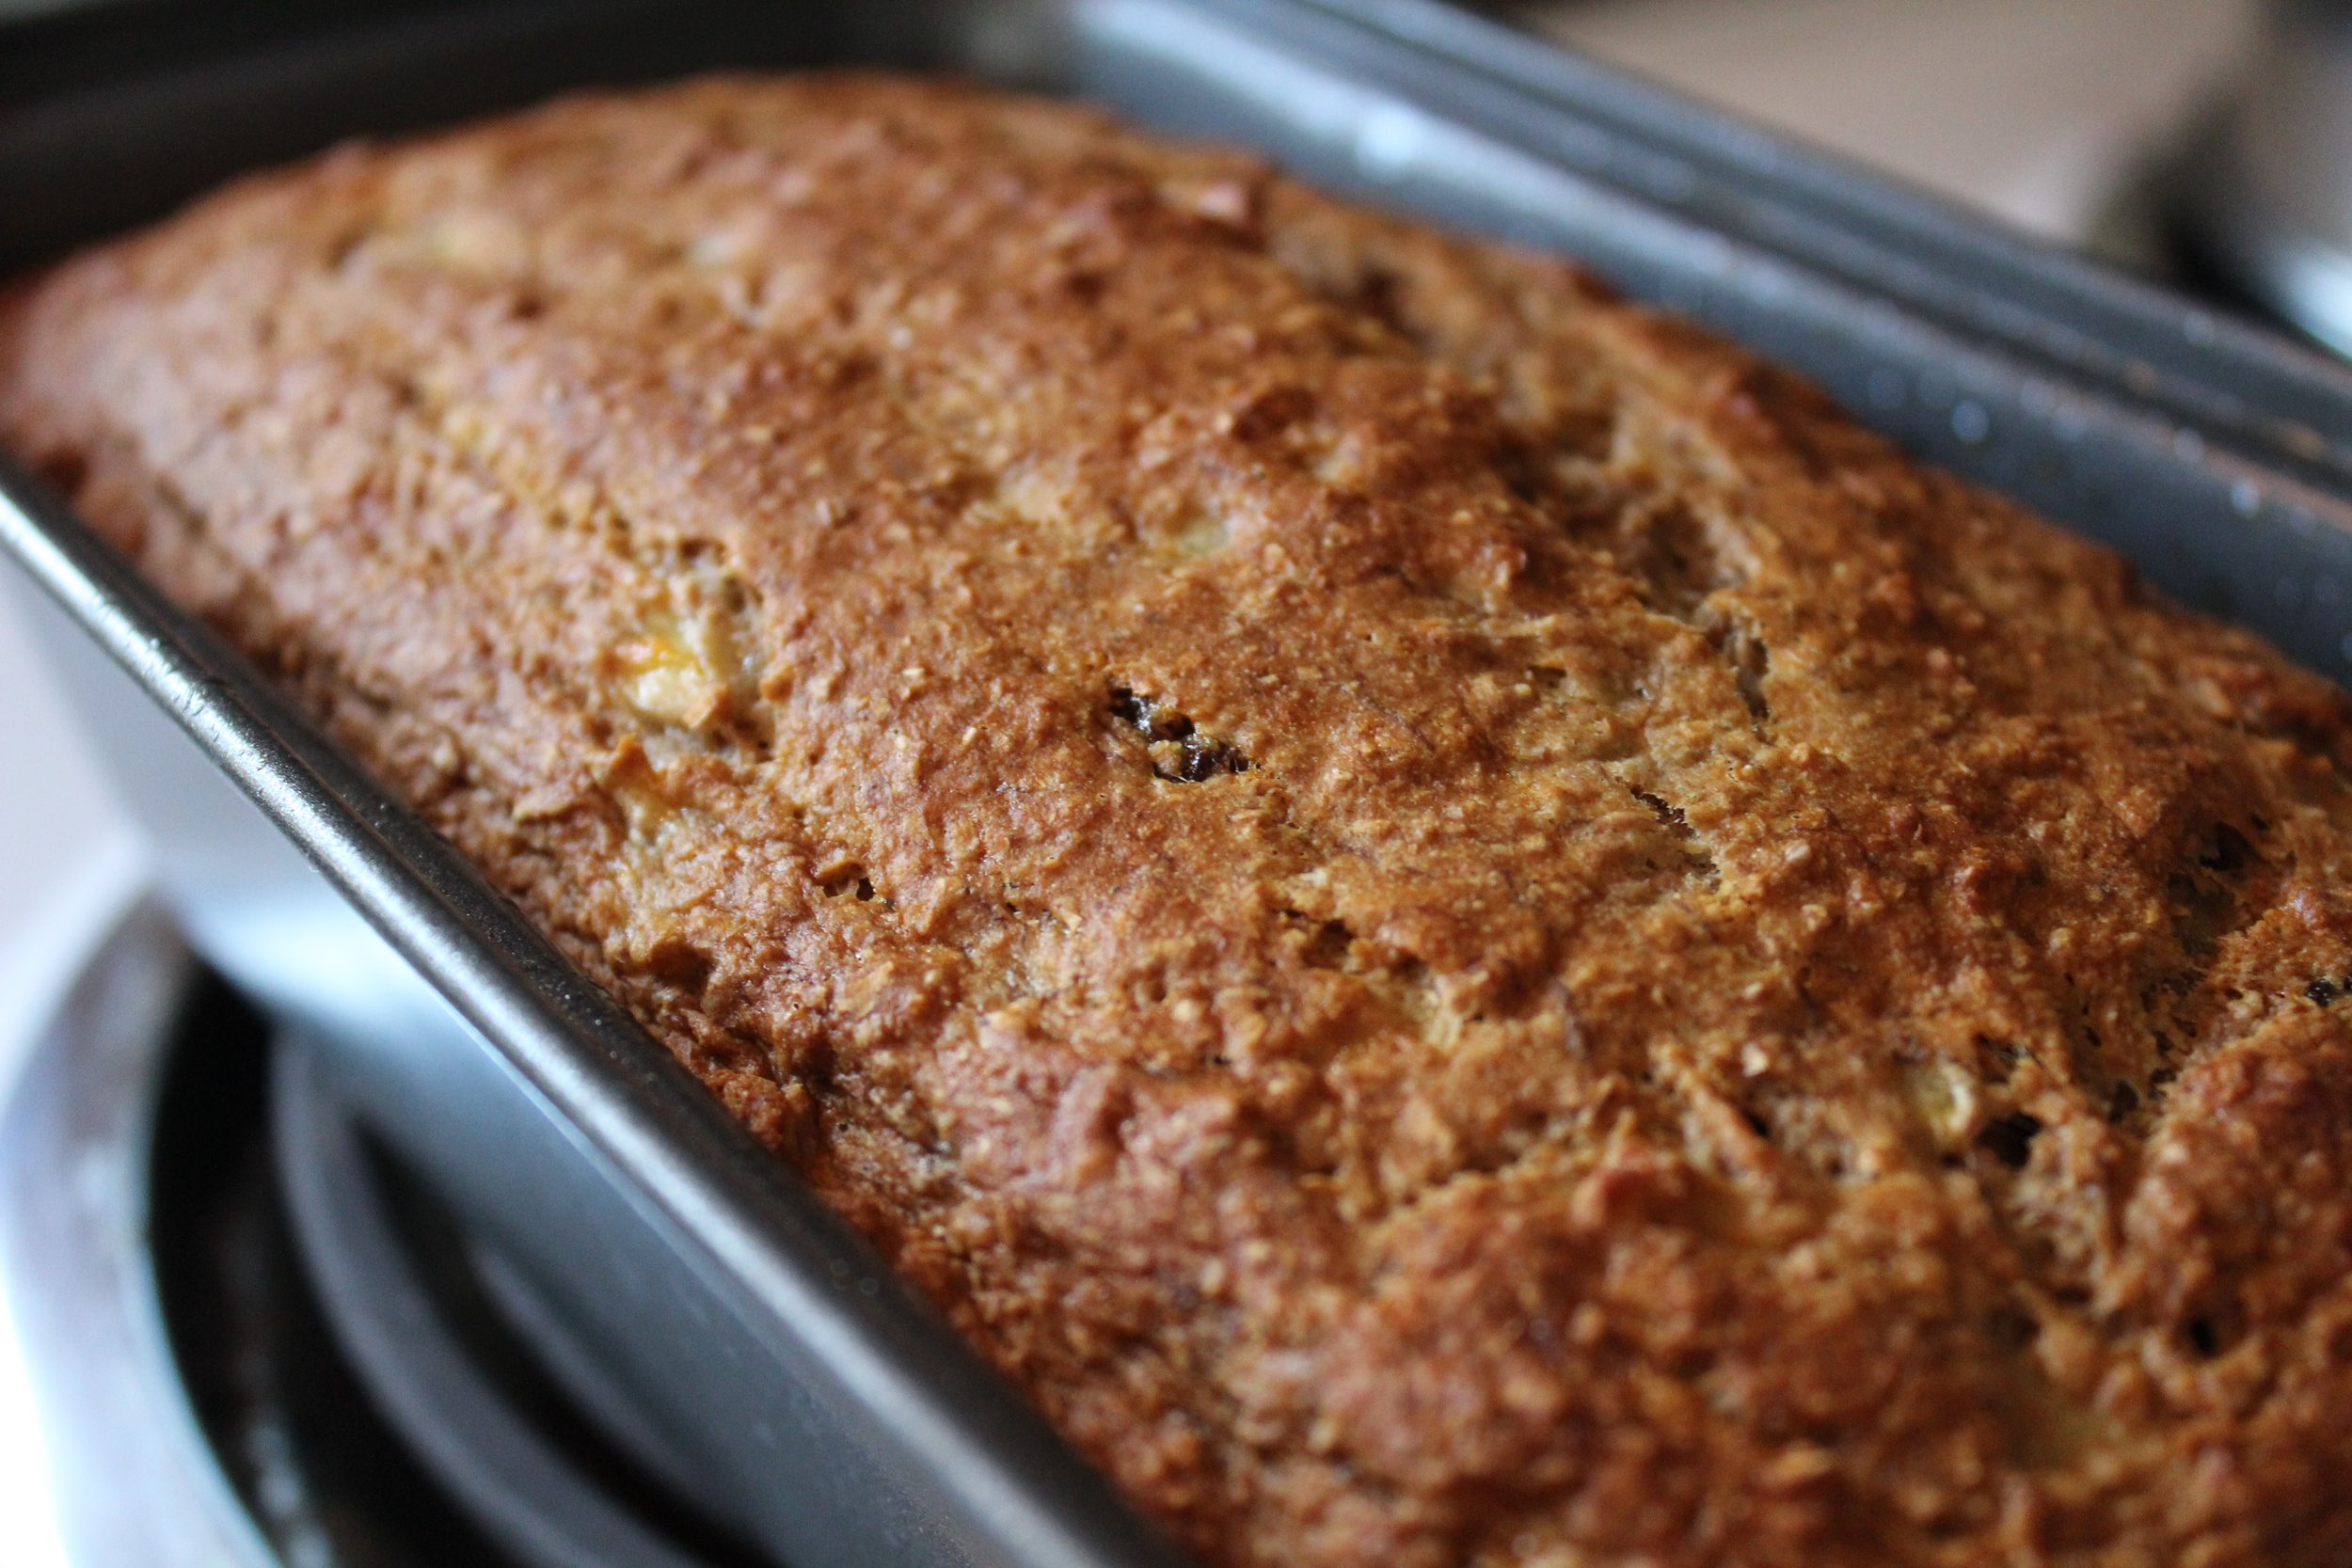 Cooling Loaf for Sugar-Free Banana Bread